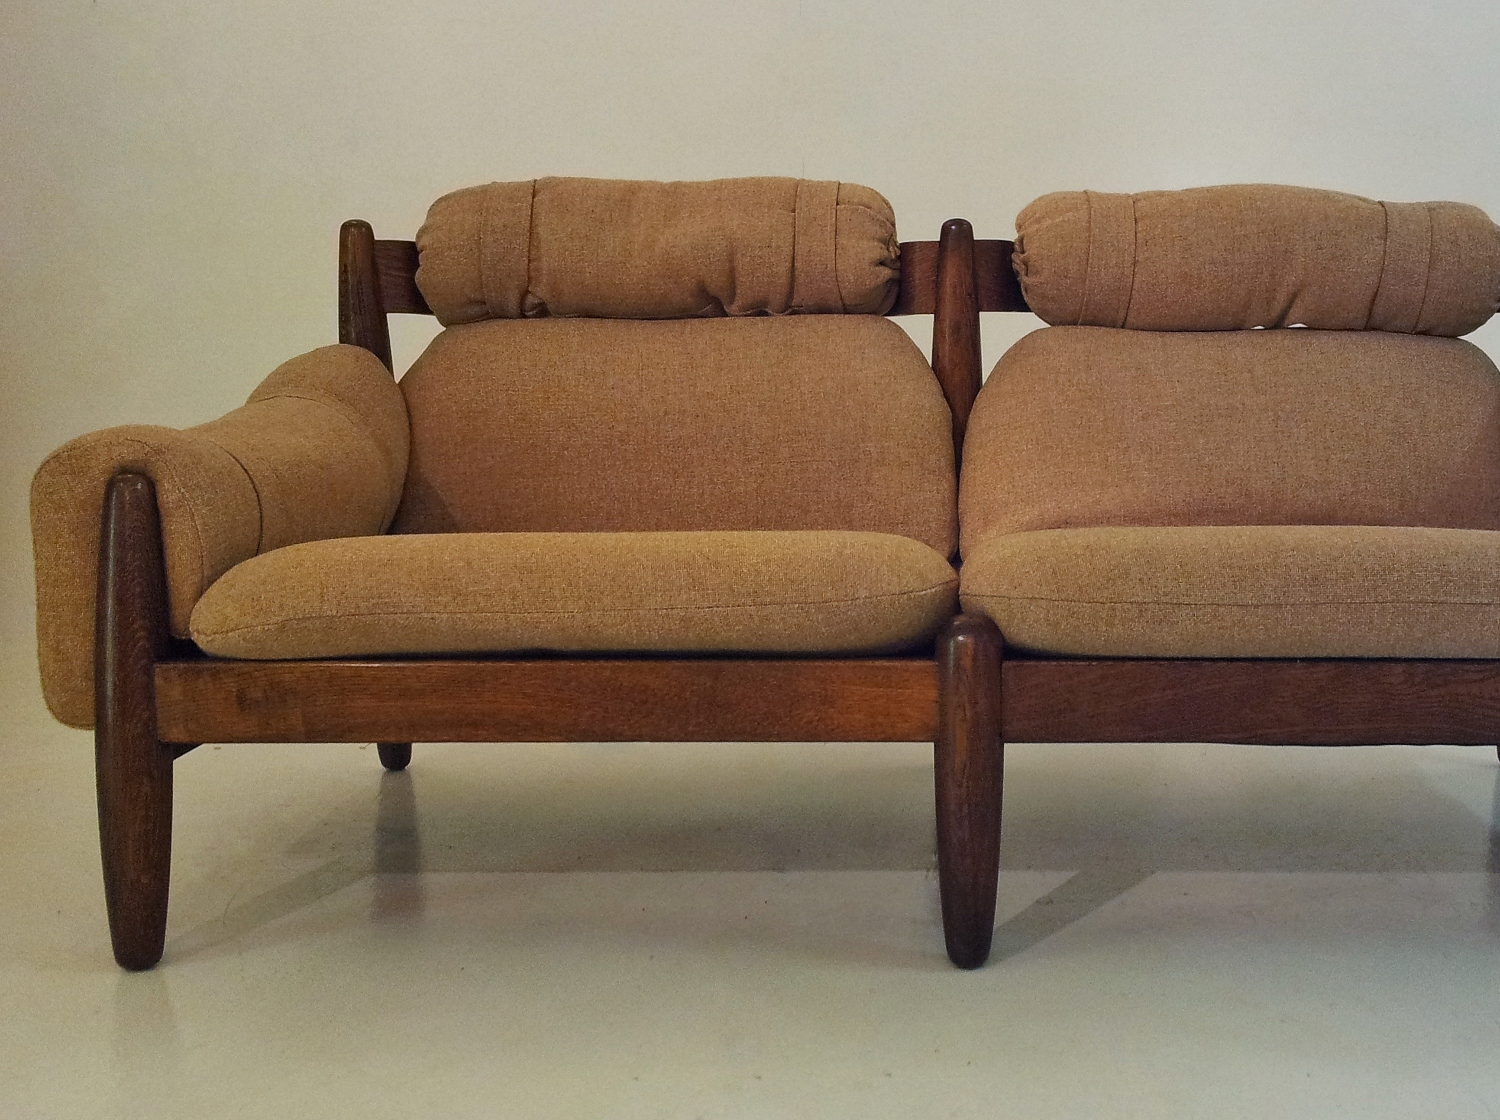 Two Seater Scandinavian Vintage Sofa 1970 S Ca Norwegian In Sofas From Roomscape